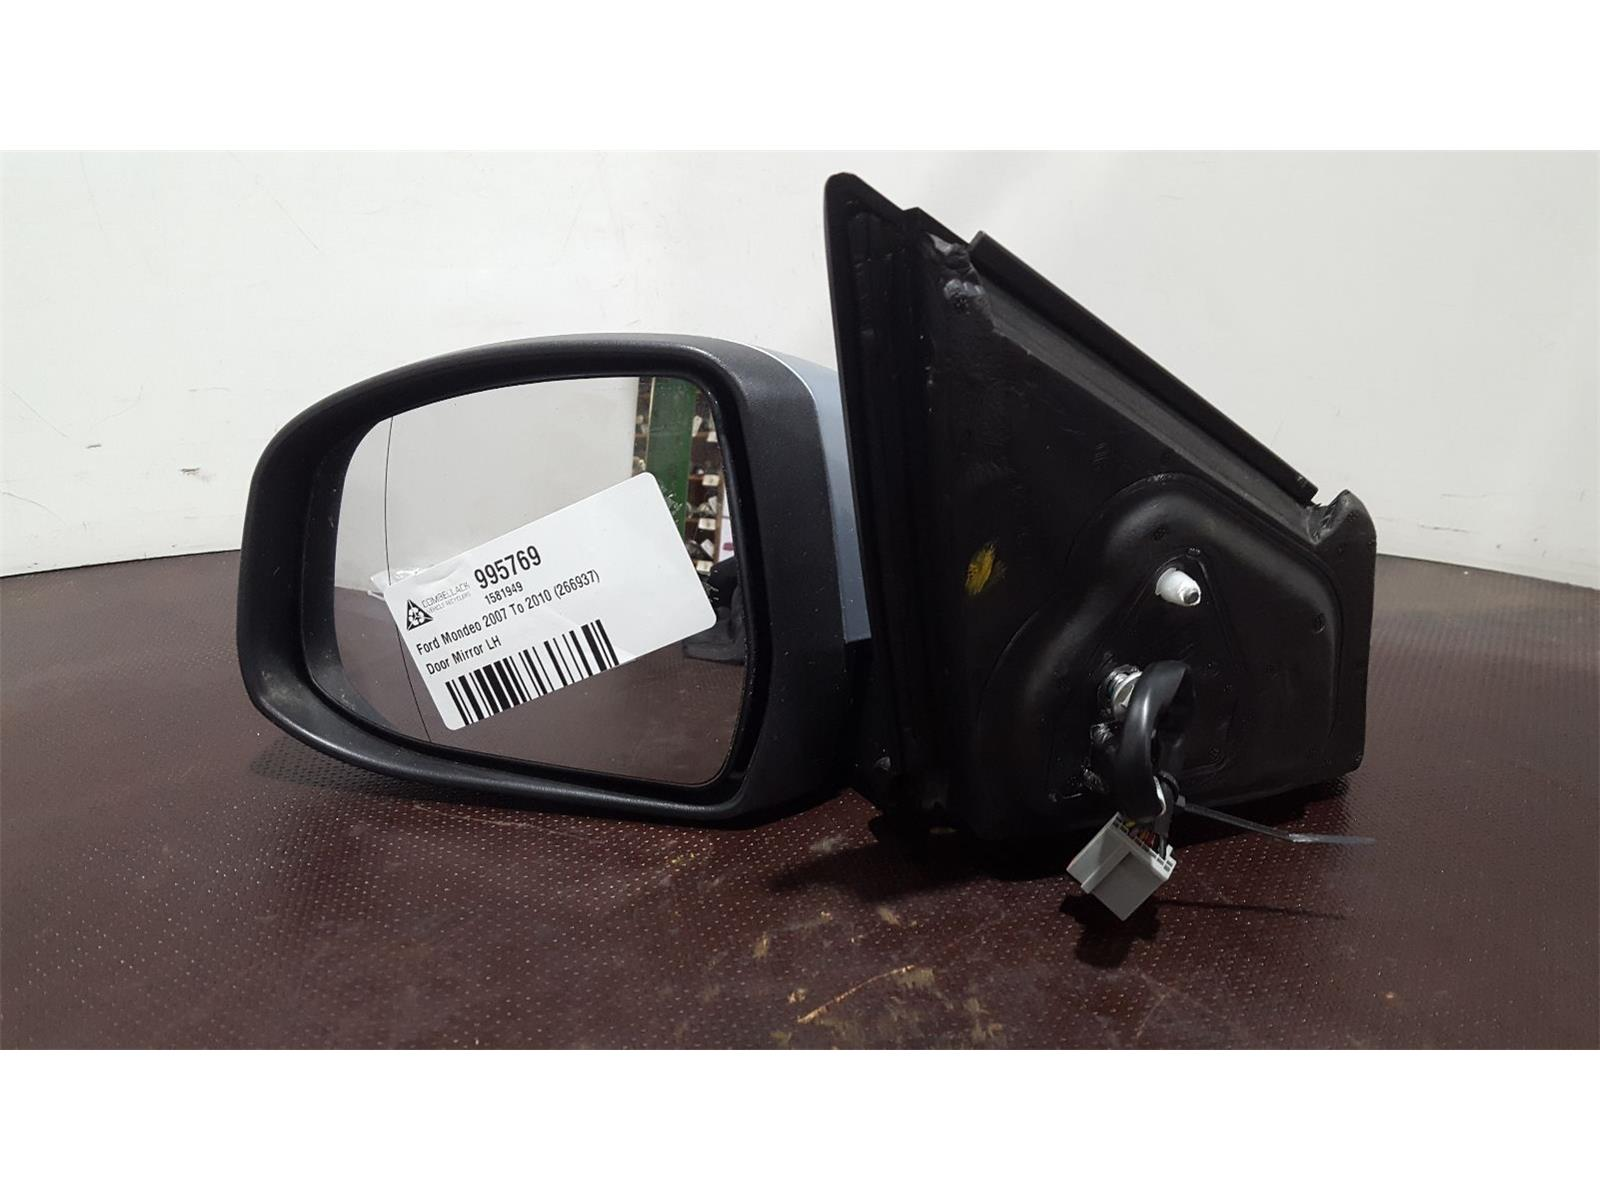 Ford Mondeo 2007 To 2010 Blue Power Folding N/S Left Passenger Door Mirror